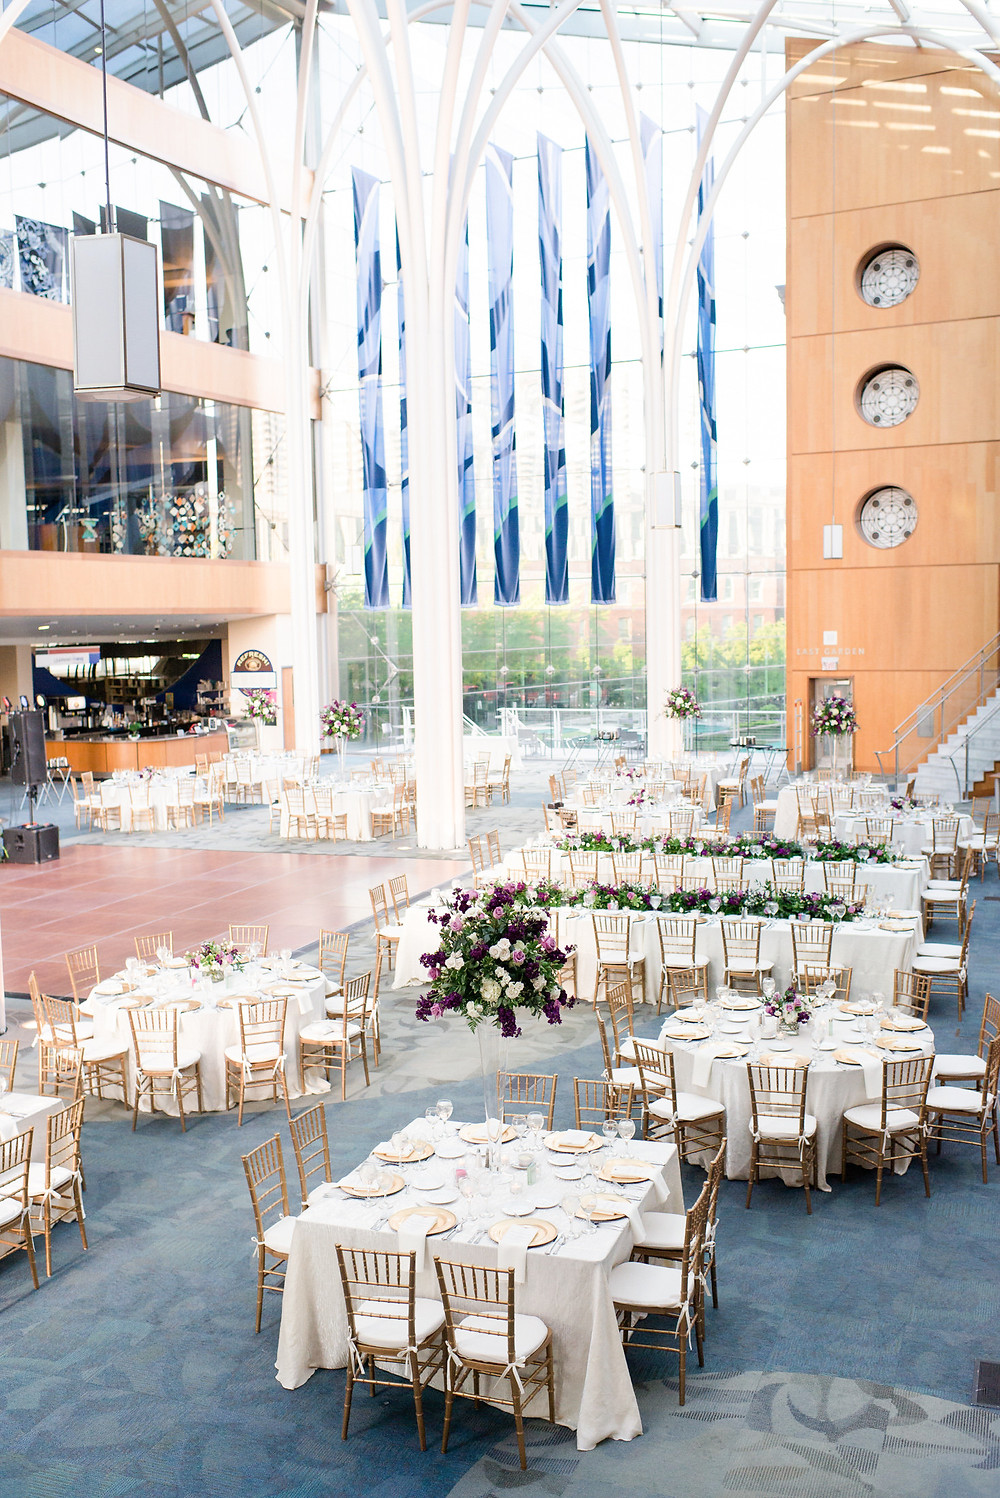 Indianapolis-Public-Library-Wedding-Reception